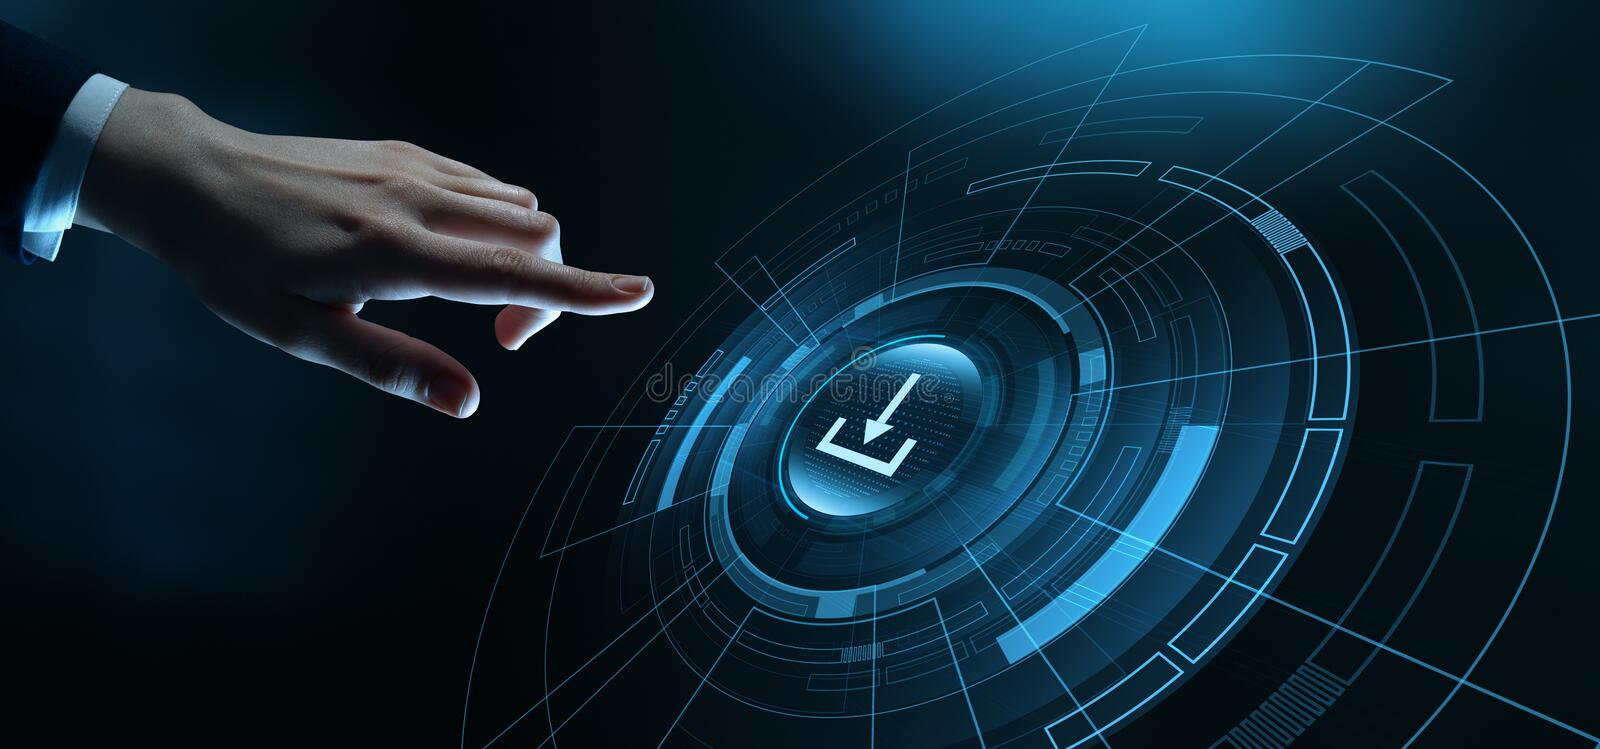 Download Data Storage Business Technology Network Internet Concept.  stock images